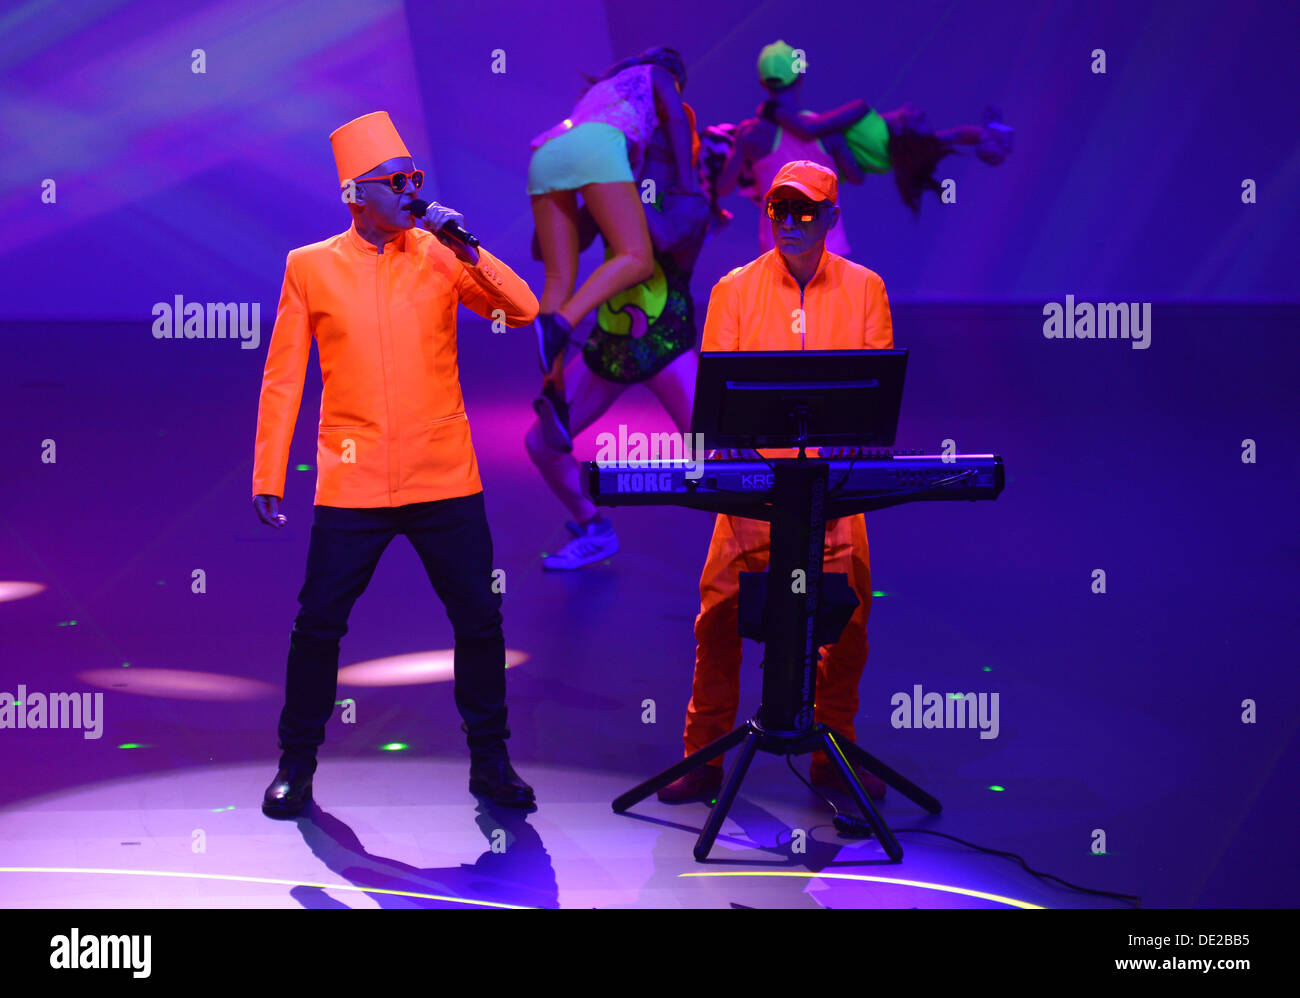 Frankfurt, Germany. 9th Sept, 2013.The band Pet Shop Boys performs at the Volkswagen group evening prior the Frankfurt Motor Show IAA in the Fraport Arena in Frankfurt/Main, Germany, 09 September 2013. Photo: ULI DECK Credit:  dpa picture alliance/Alamy Live News - Stock Image